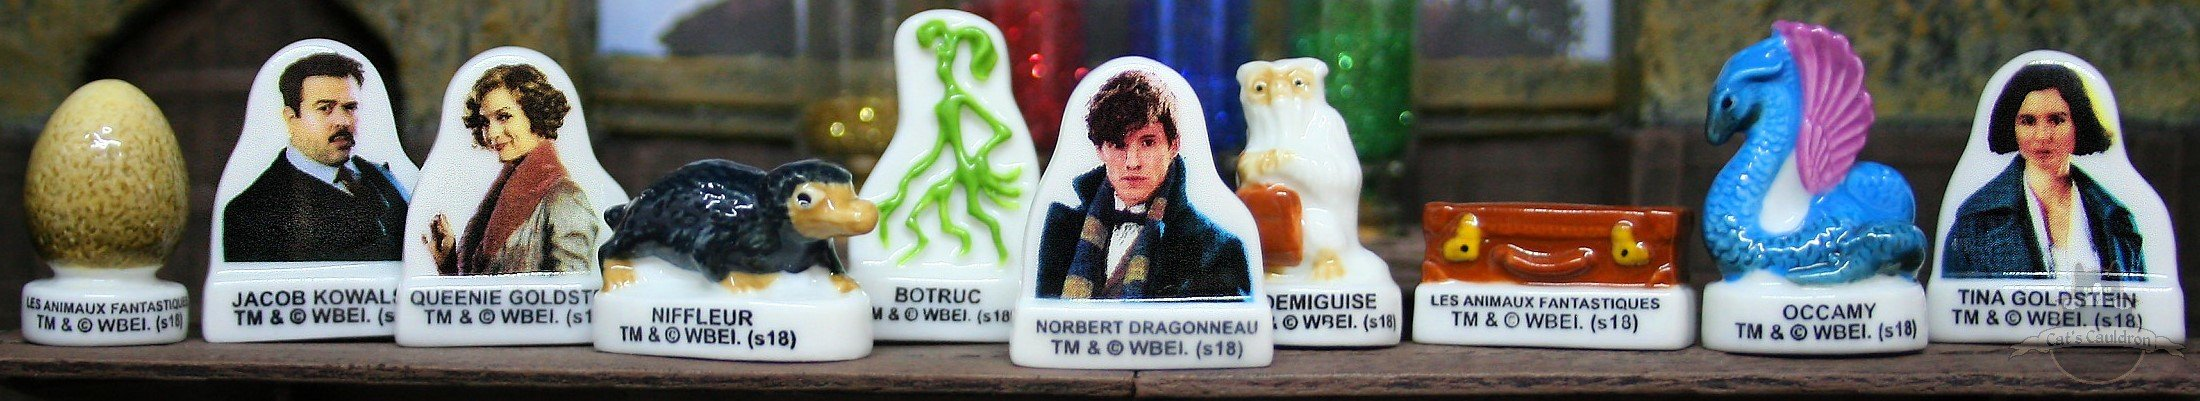 Fantastic Beasts Figuren set